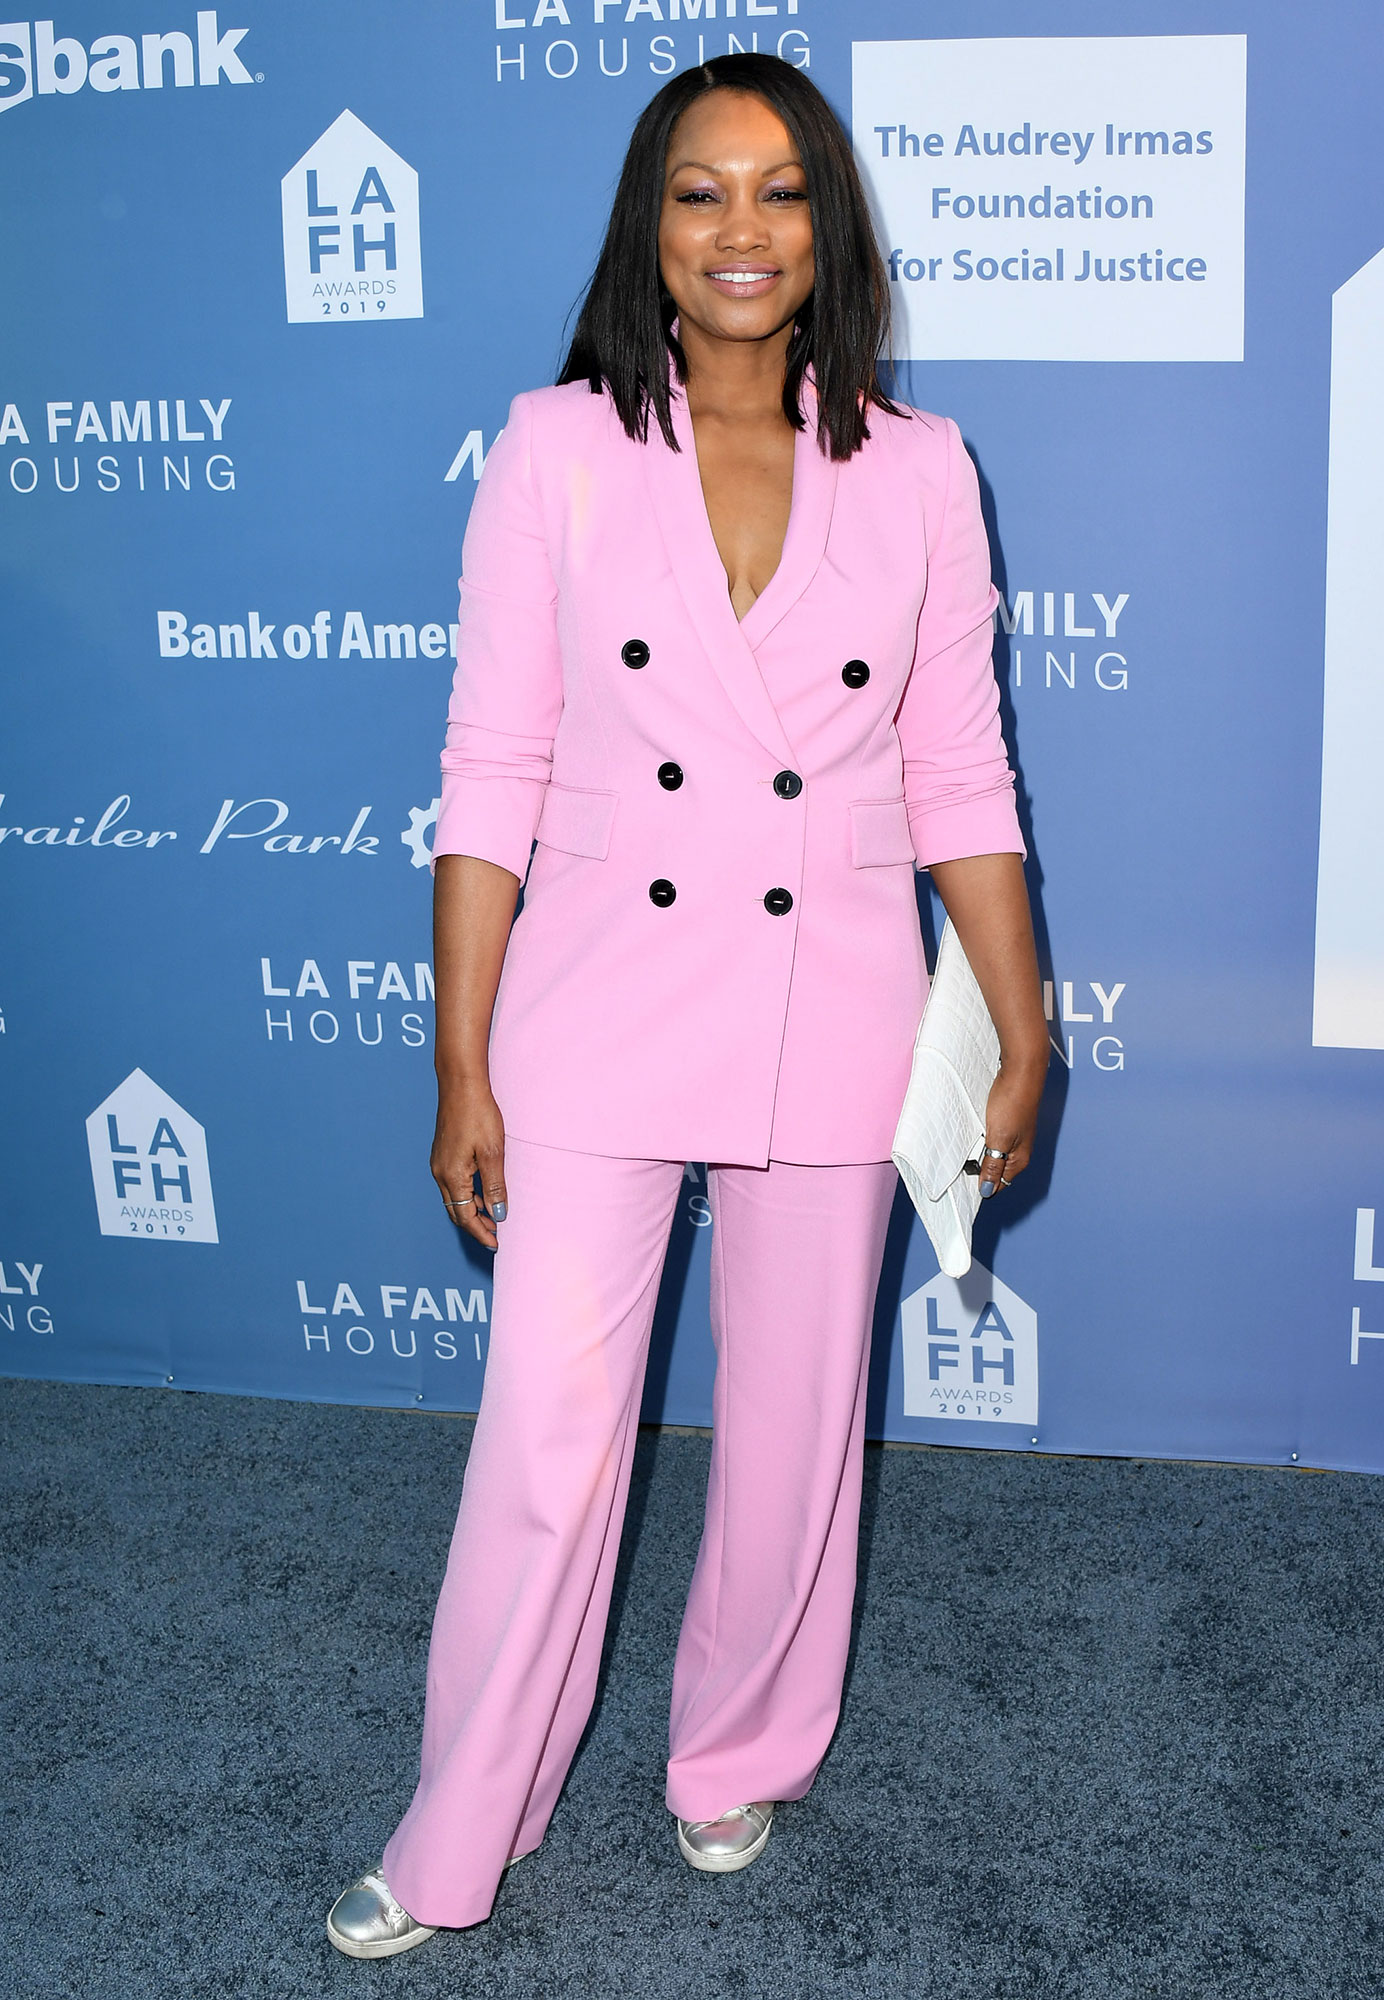 """Advice From Mothers Garcelle Beauvais - The actress confesses that, like all parents, she learned that not everything is sunshine and rainbows. """"It's never going to be perfect, but just love as much as you can,"""" she says."""